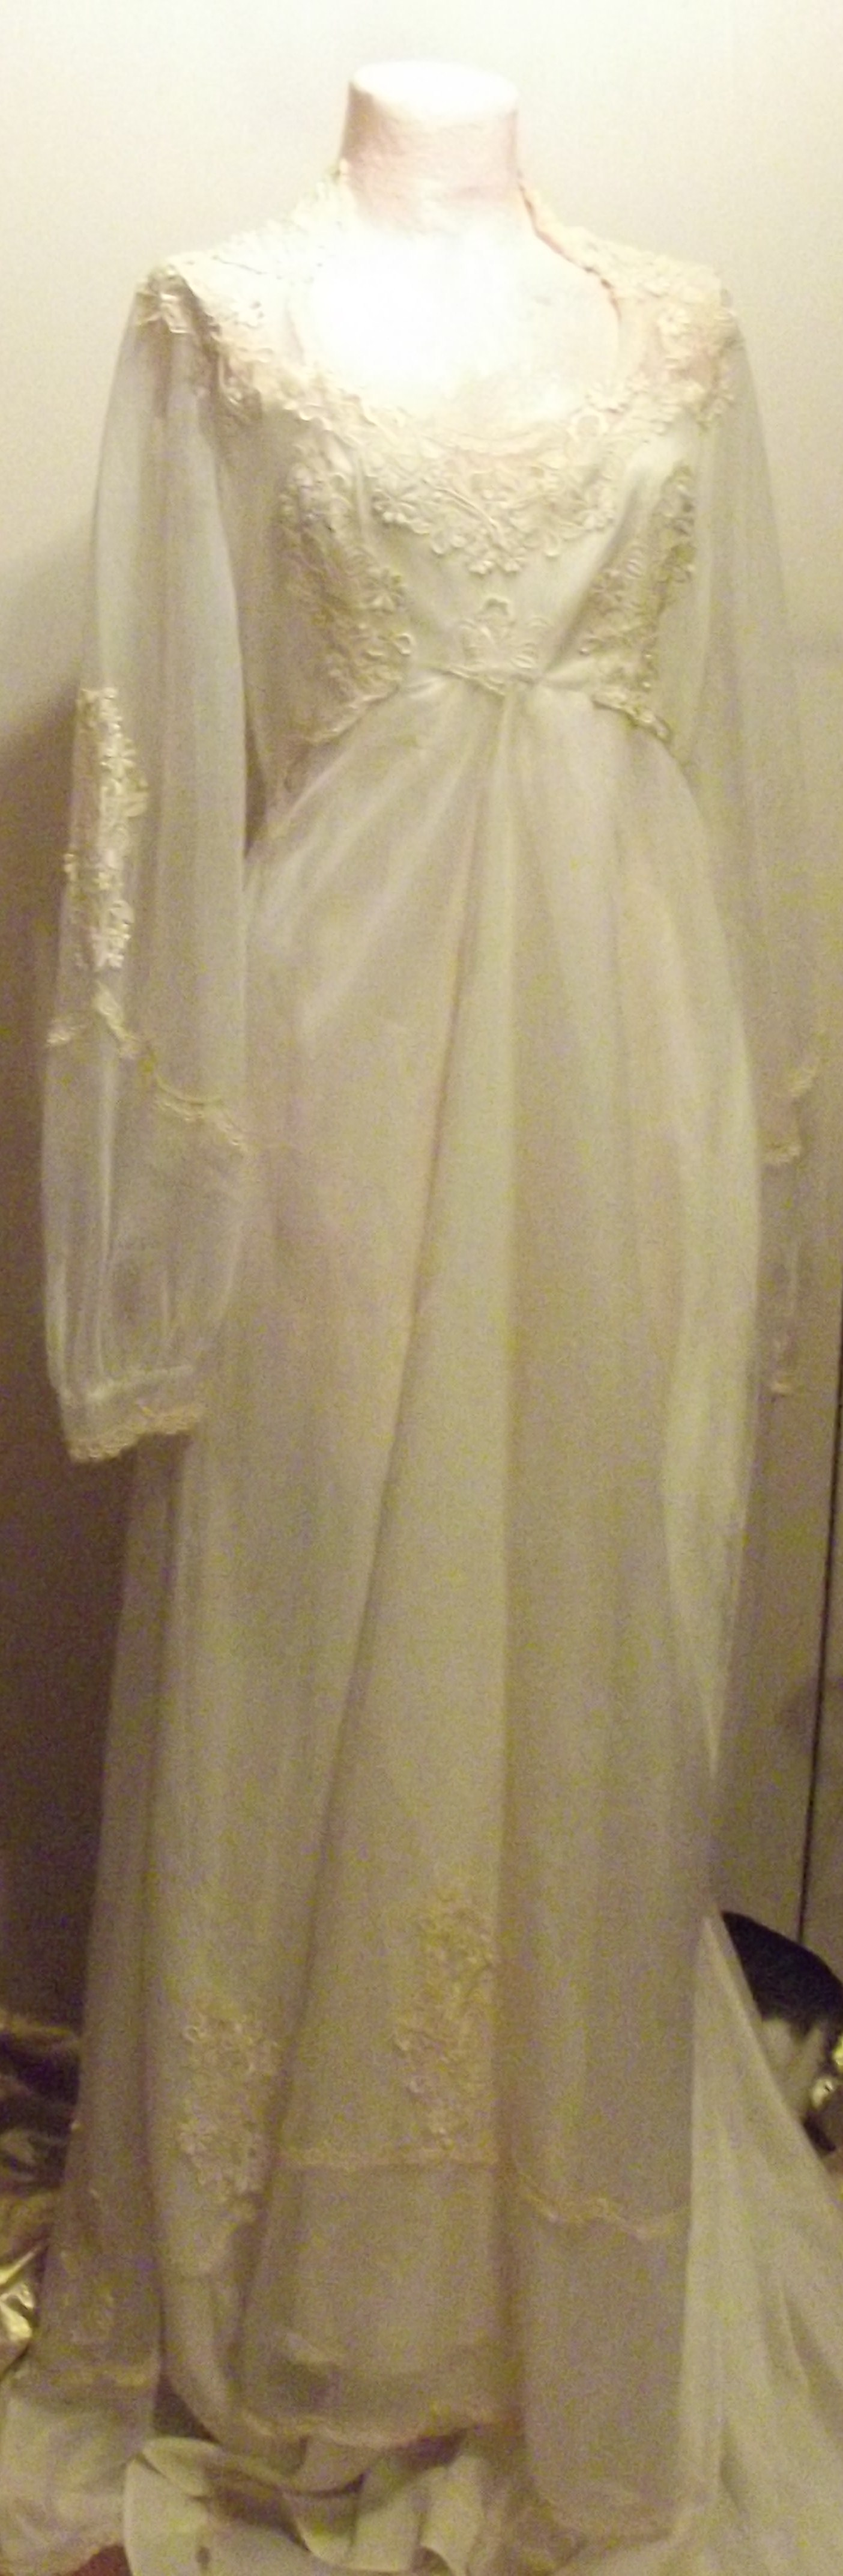 Southern belle wedding dresses  Vintage Southern Wedding Dress  Southern Charms Yall  Pinterest